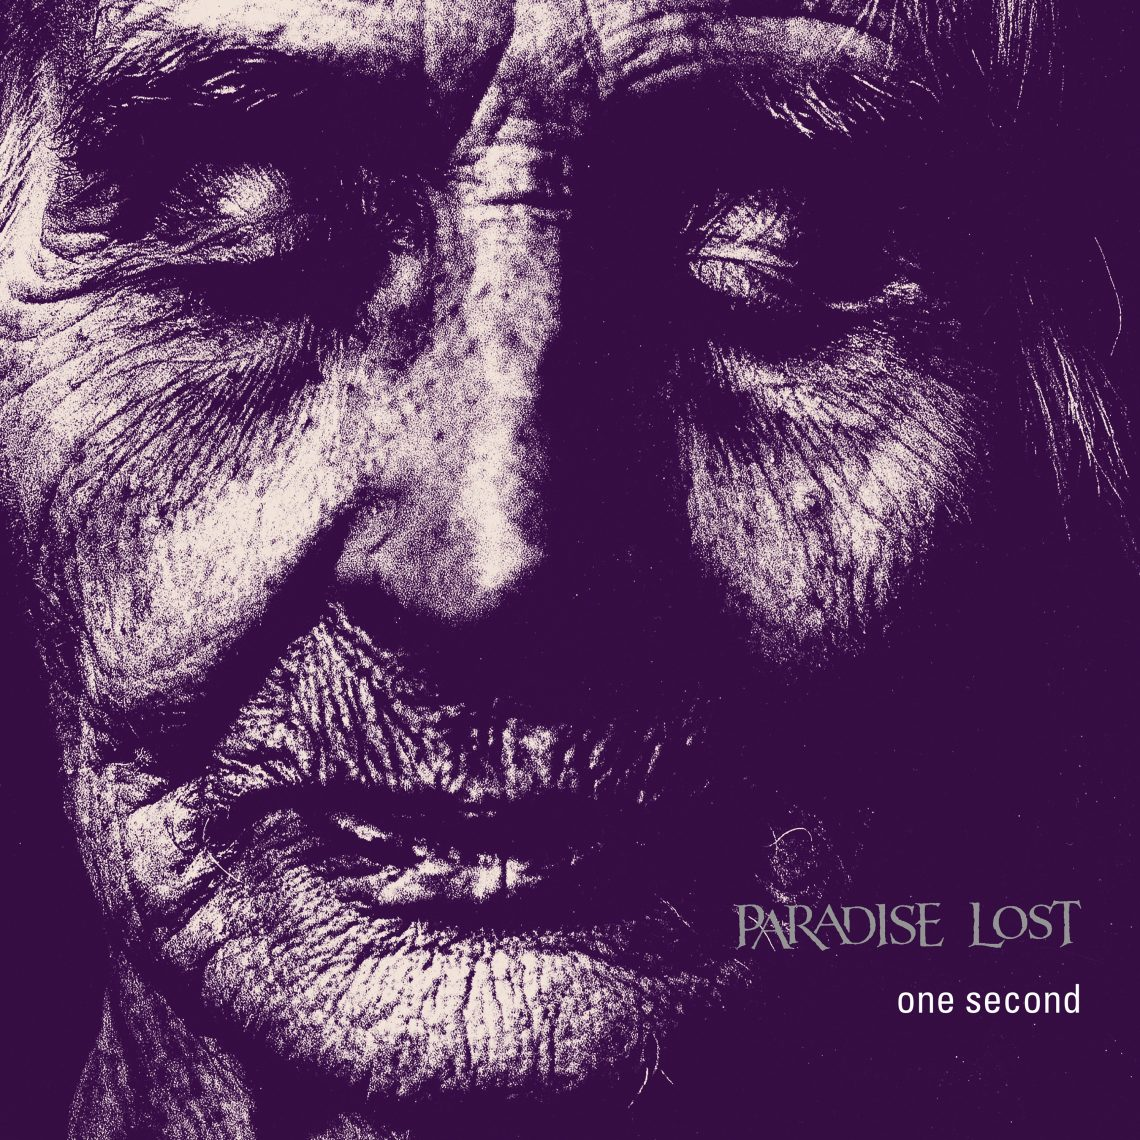 Paradise Lost to release 'One Second' 20th anniversary edition on 14th July (Music For Nations)